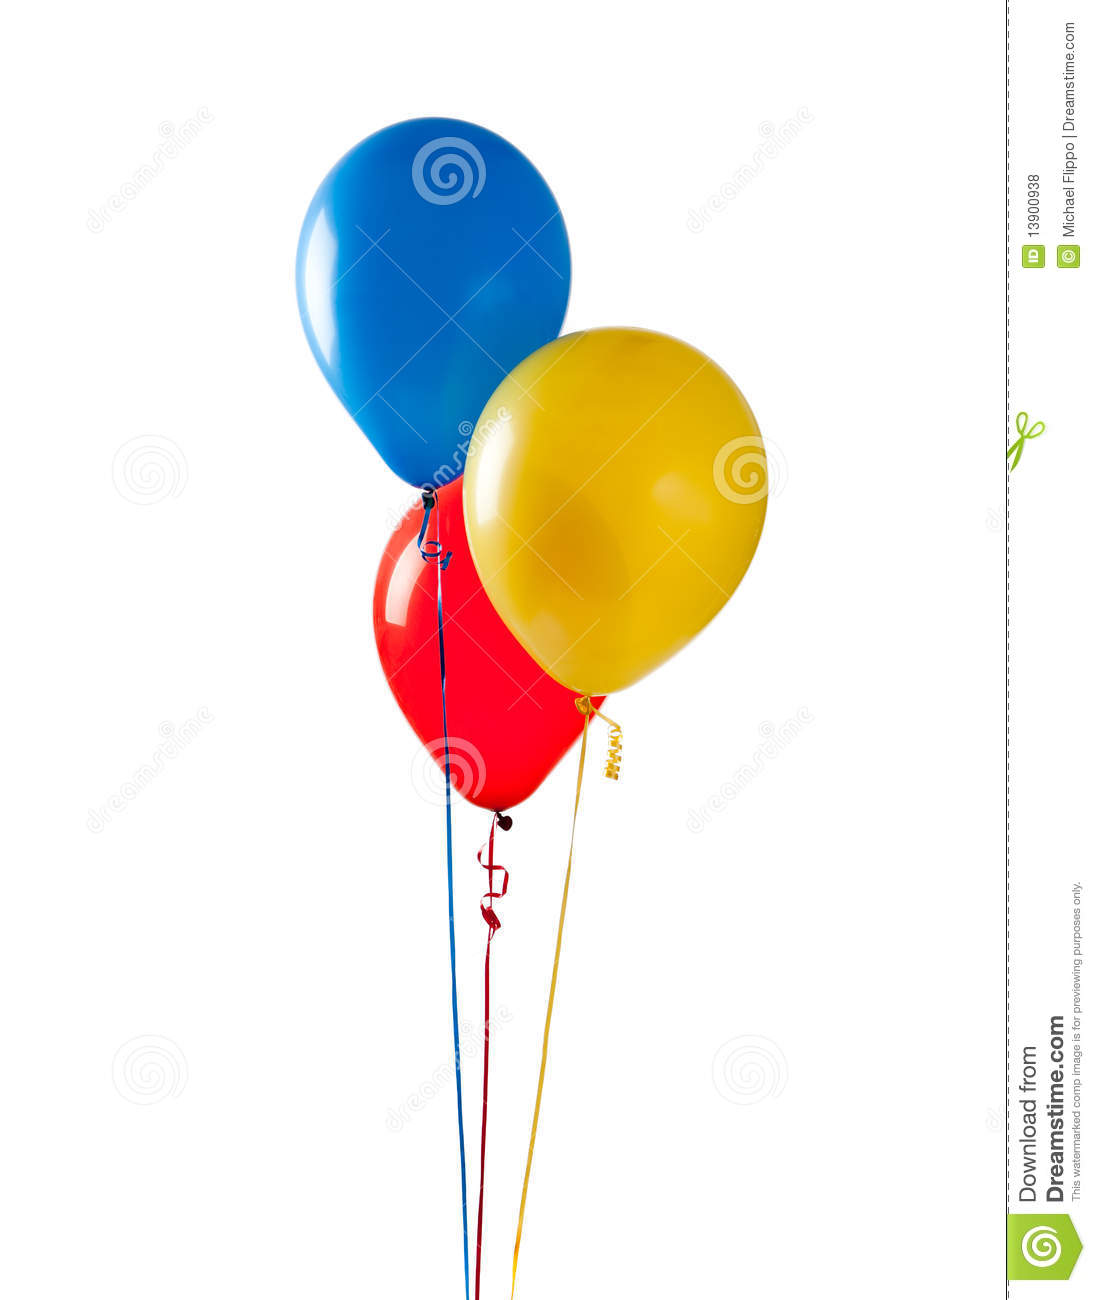 Colored Balloons On A White Background Royalty Free Stock ...